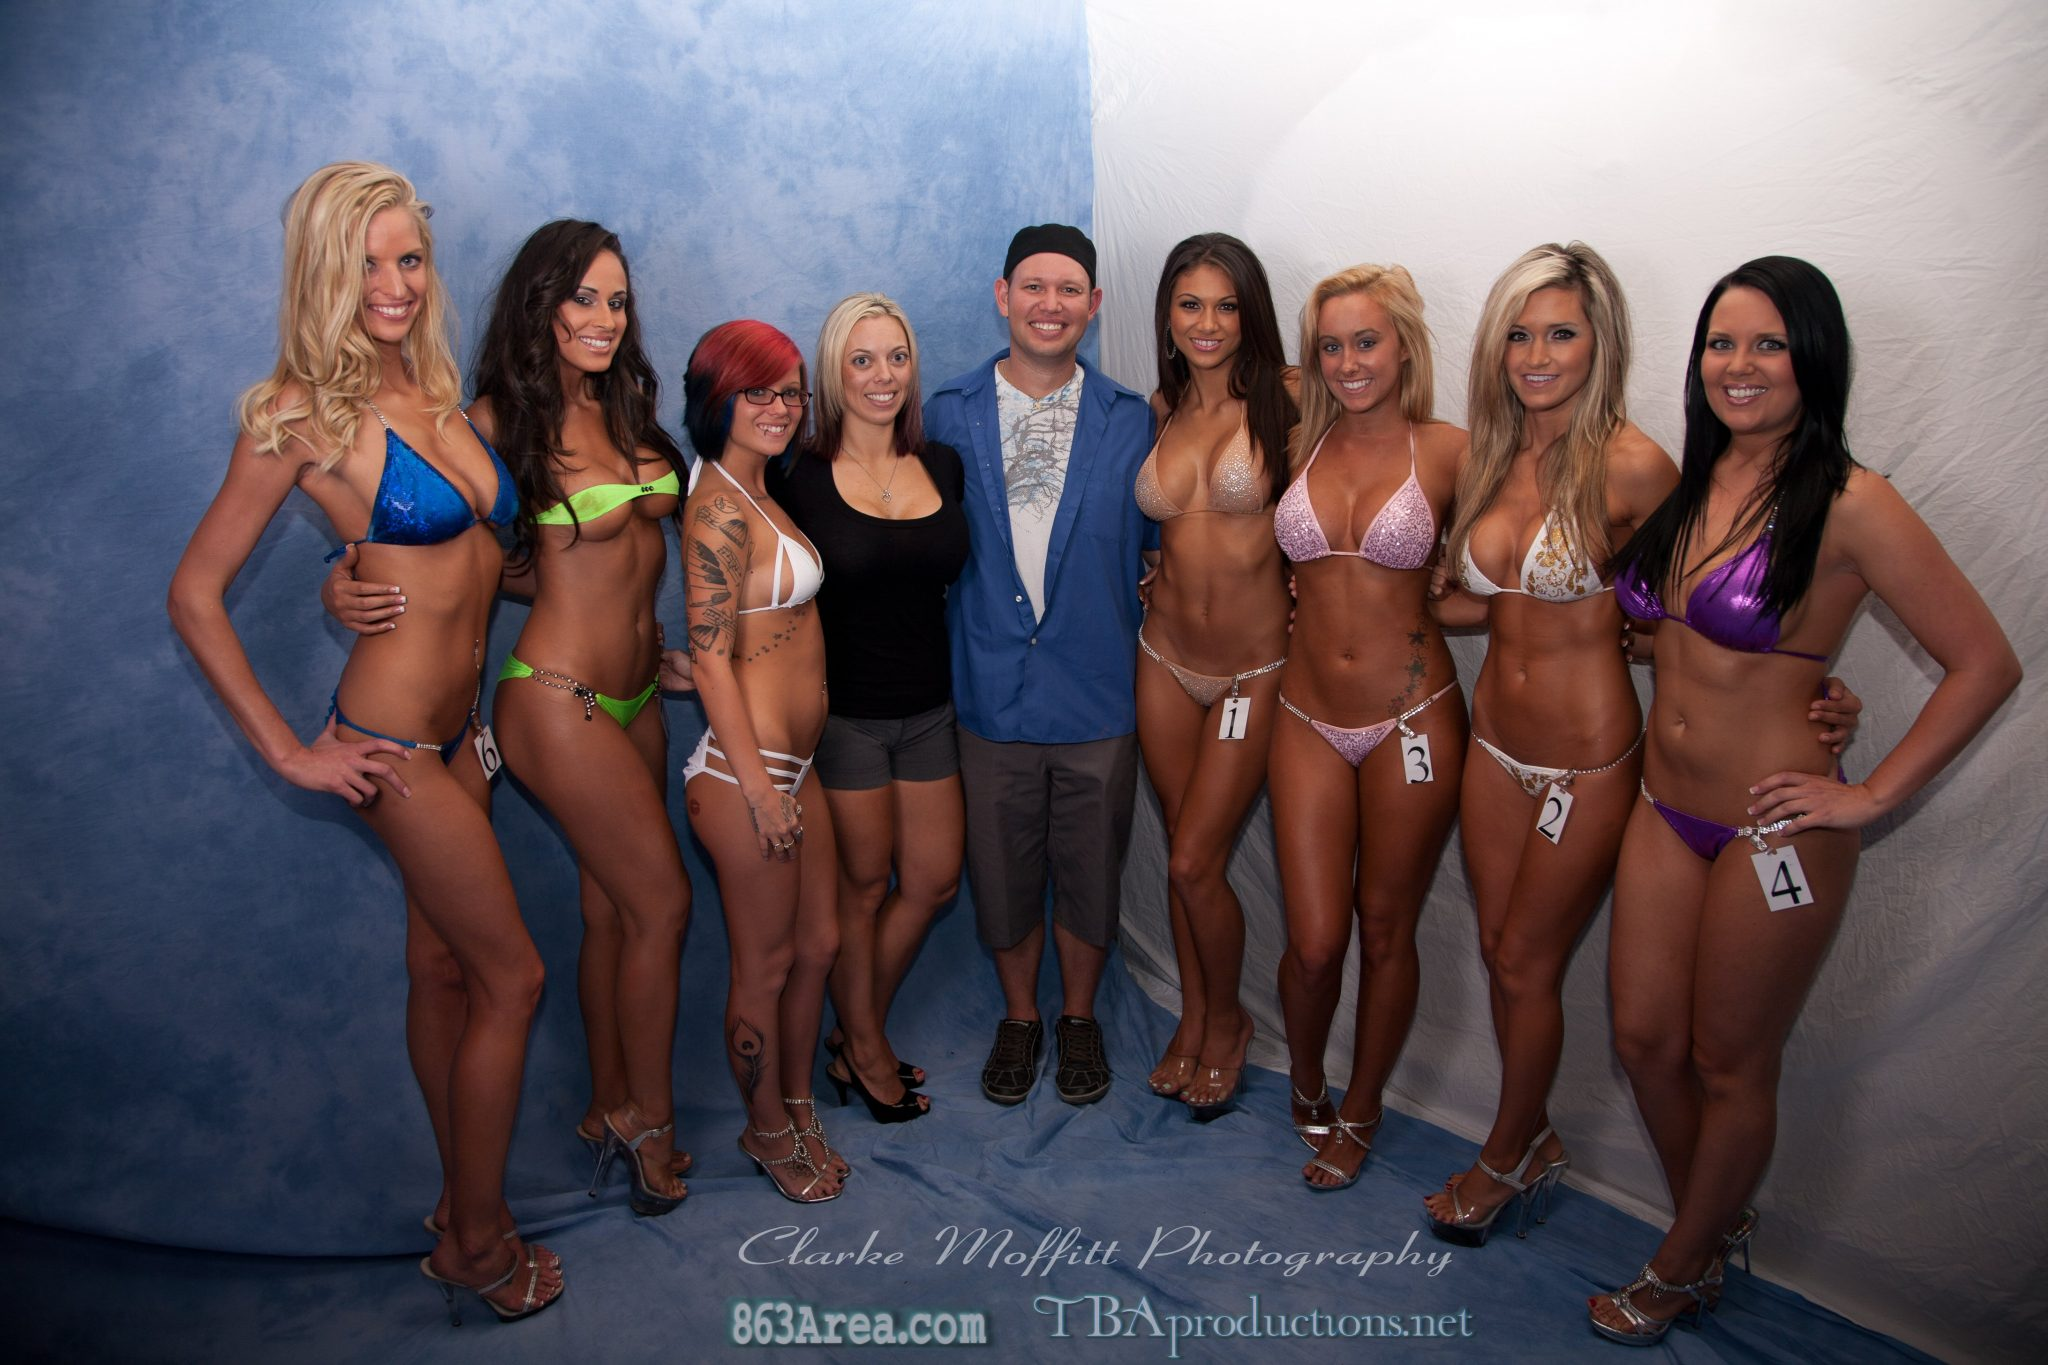 Bikini Contests & Modeling Events